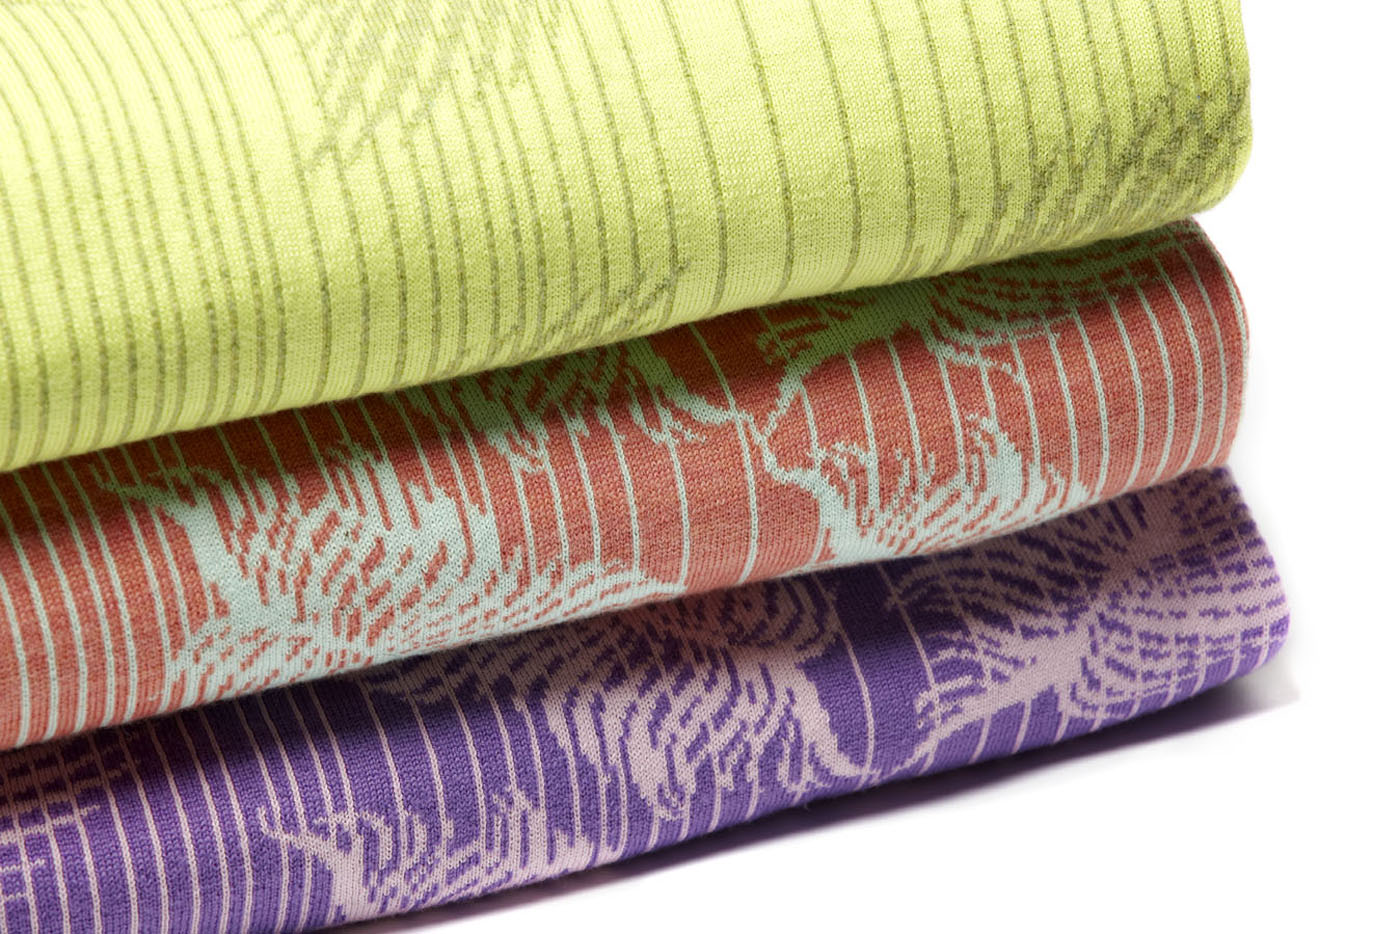 BLANKETS > INHOUSE JACQUARD KNITTED  Vintage pre-digital knitted fabric, Jacquard tech, merino wool